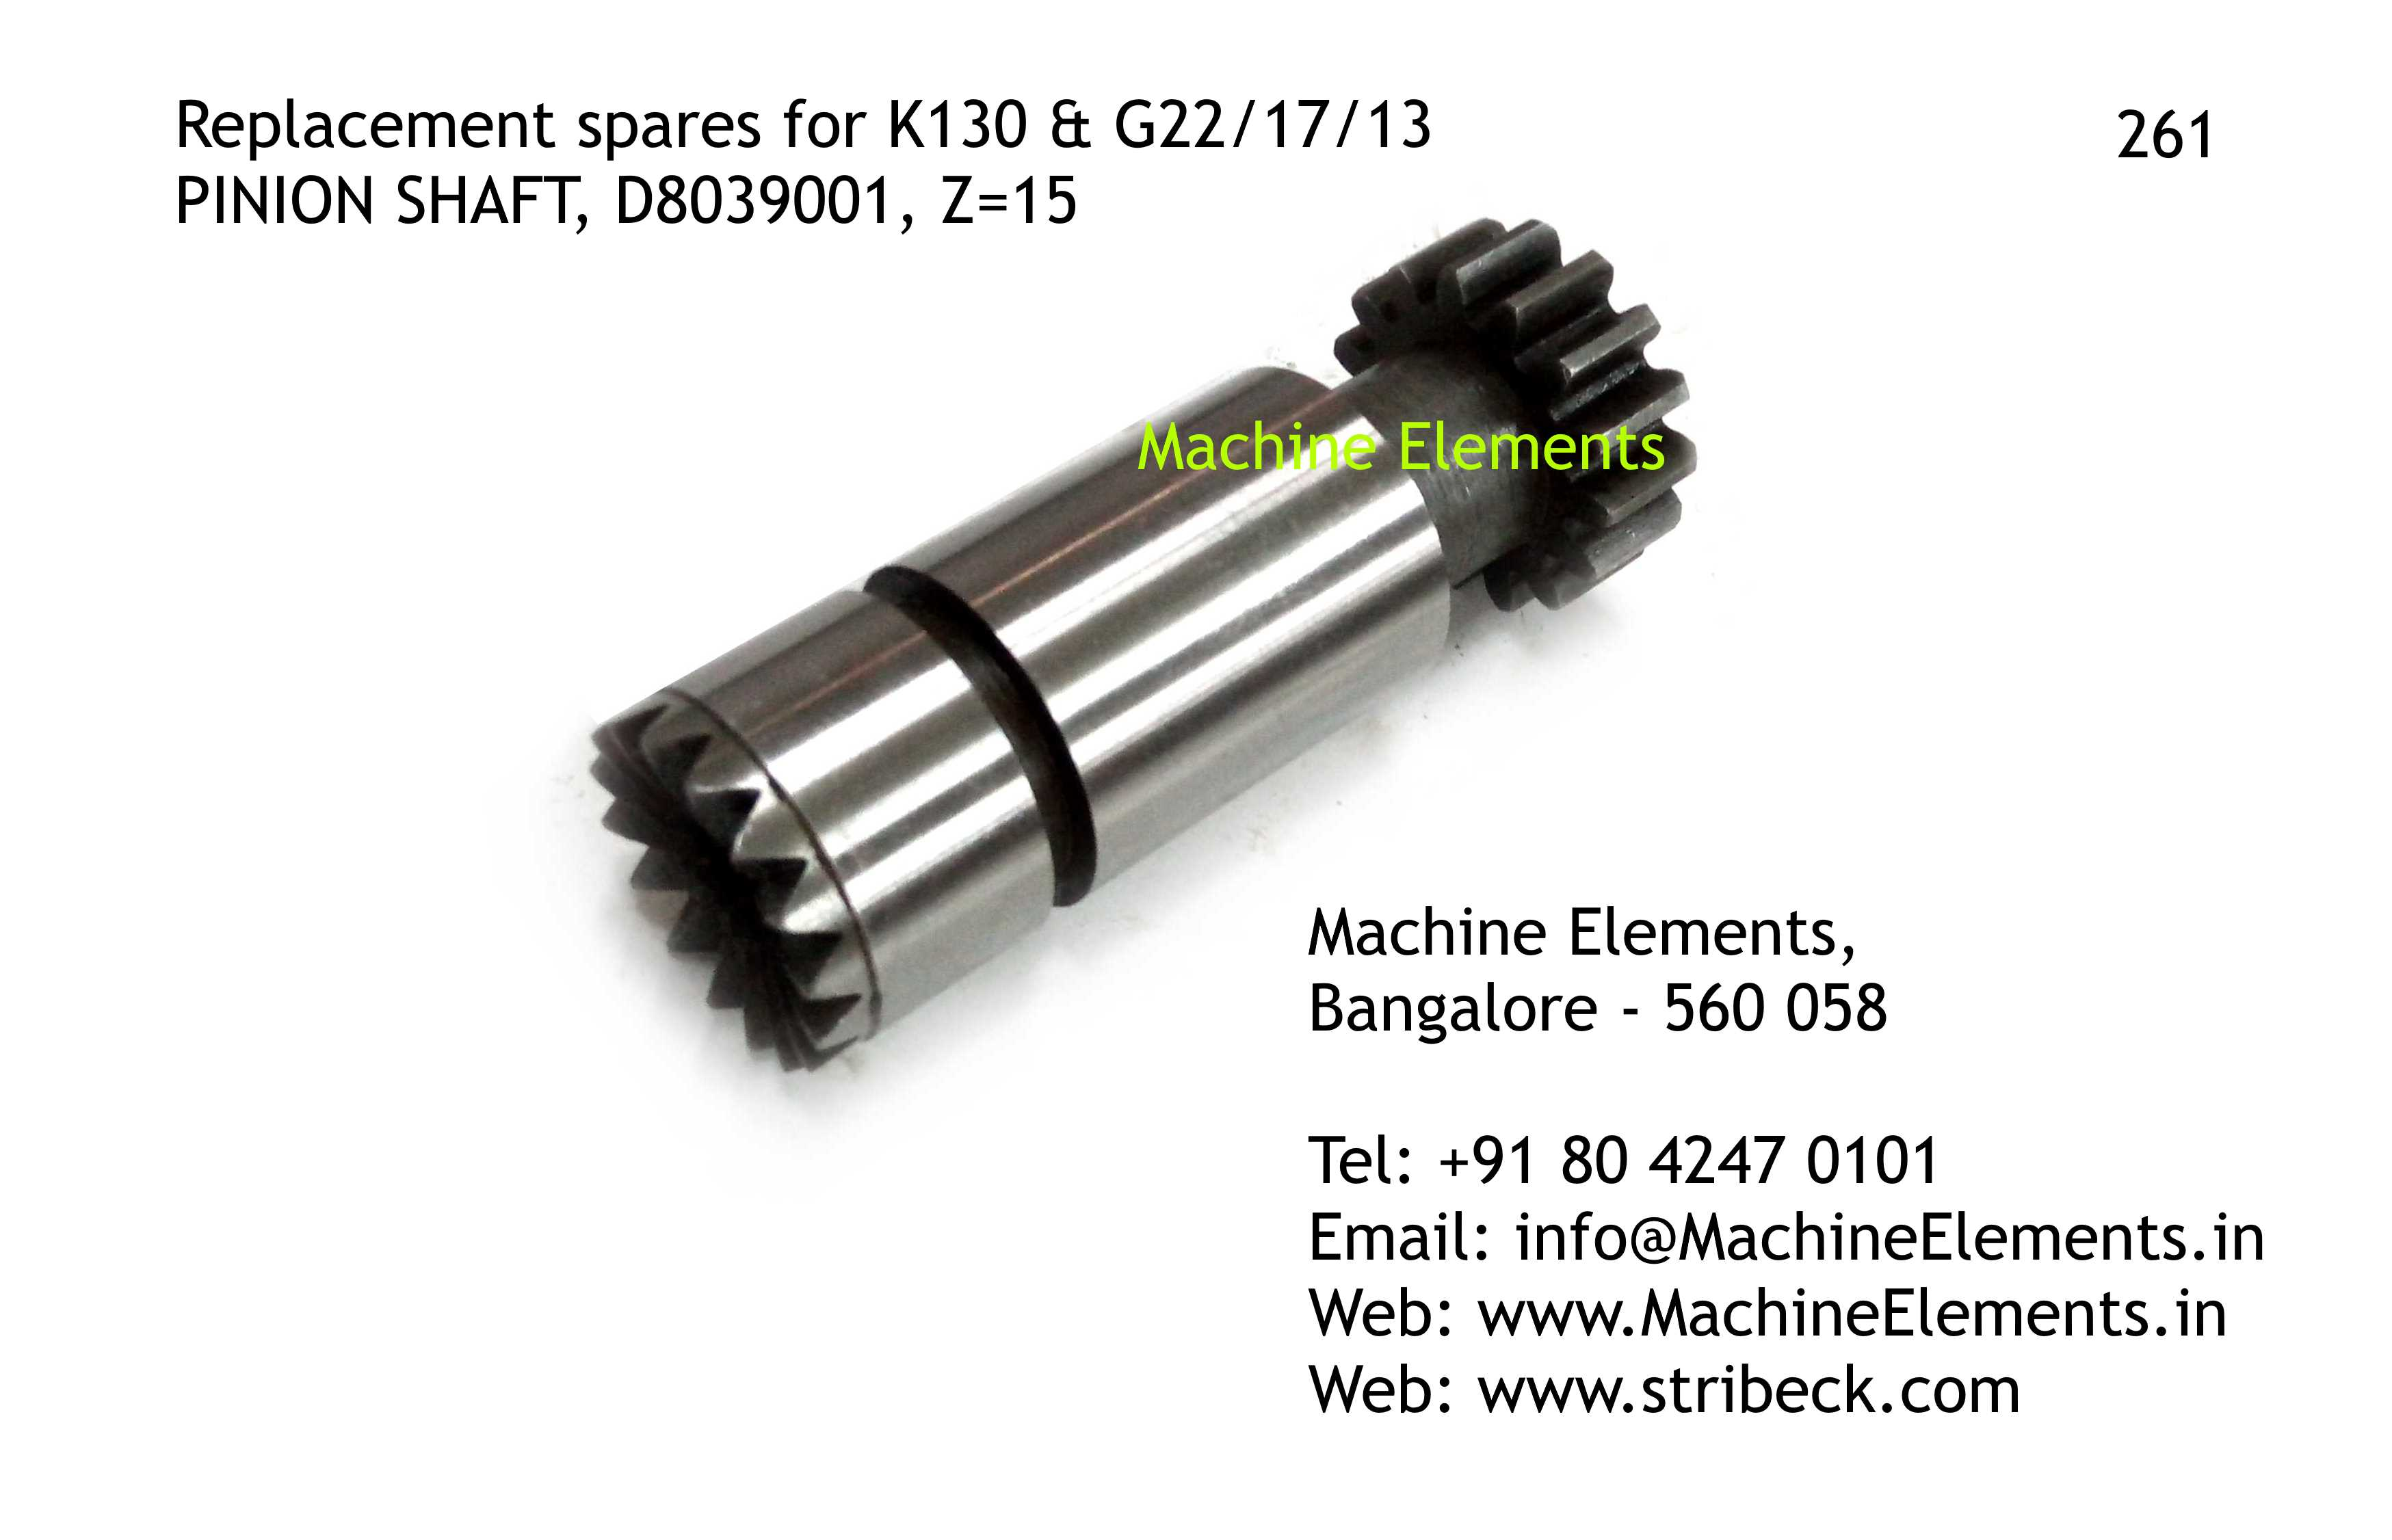 PINION SHAFT, D8039001, Z=15